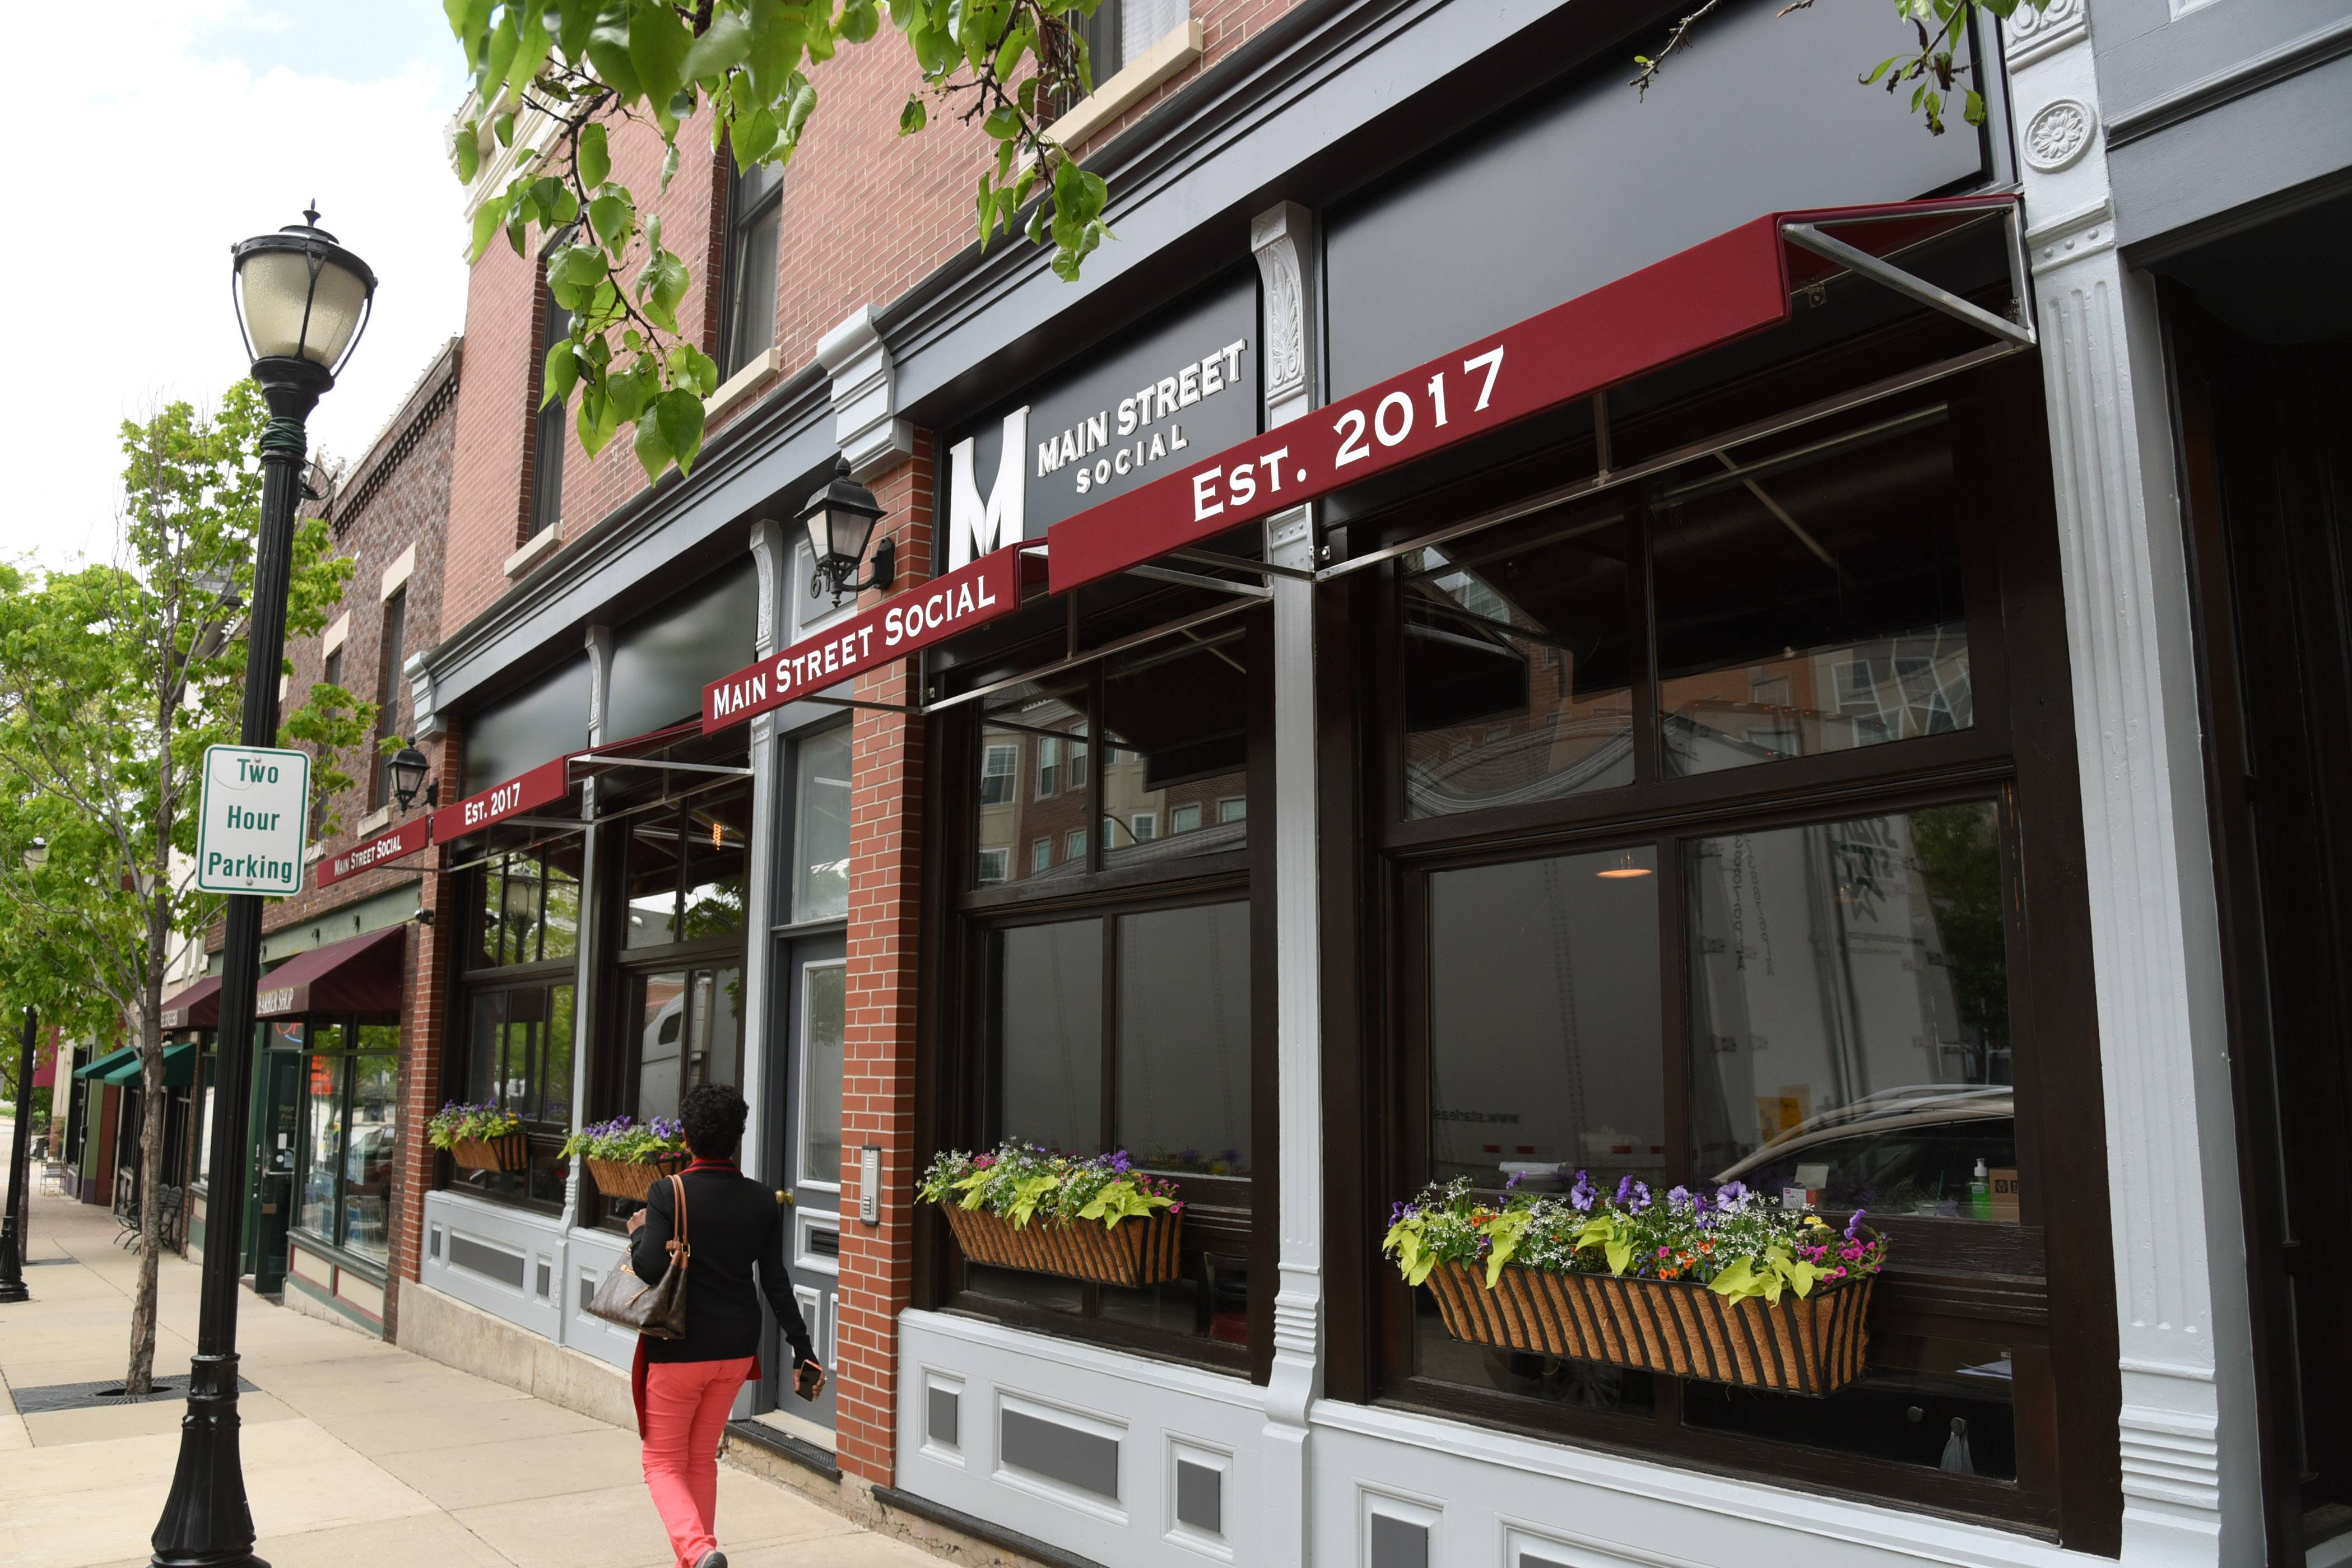 "Main Street Social described as an ""industrial chic, urban wine bar and restaurant"" with twists on classic Italian and Mediterranean fare is scheduled to open Saturday in downtown Libertyville."